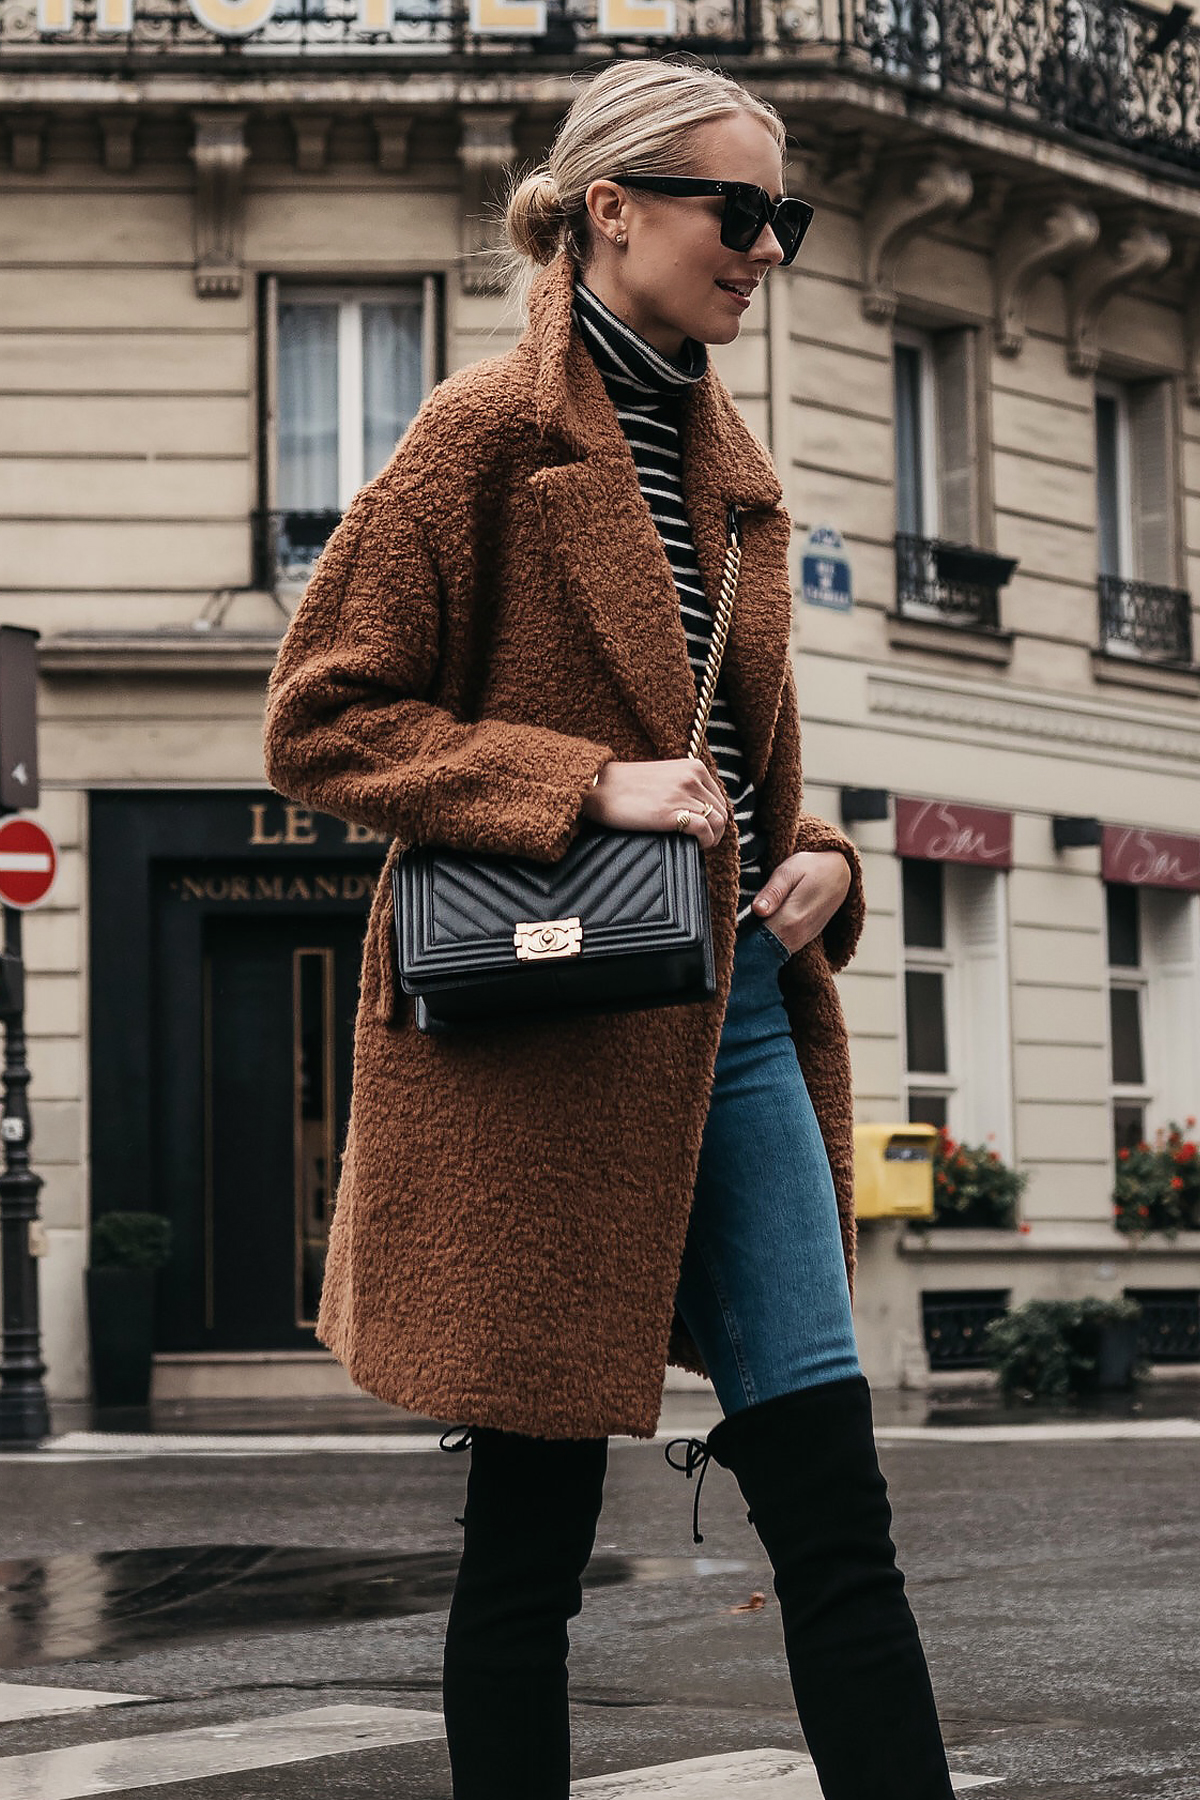 Blonde Woman Wearing Teddy Bear Coat Black White Stripe Turtleneck Sweater Denim Jeans Chanel Boy Bag Paris Street Style Fashion Jackson Dallas Blogger Fashion Blogger Street Style